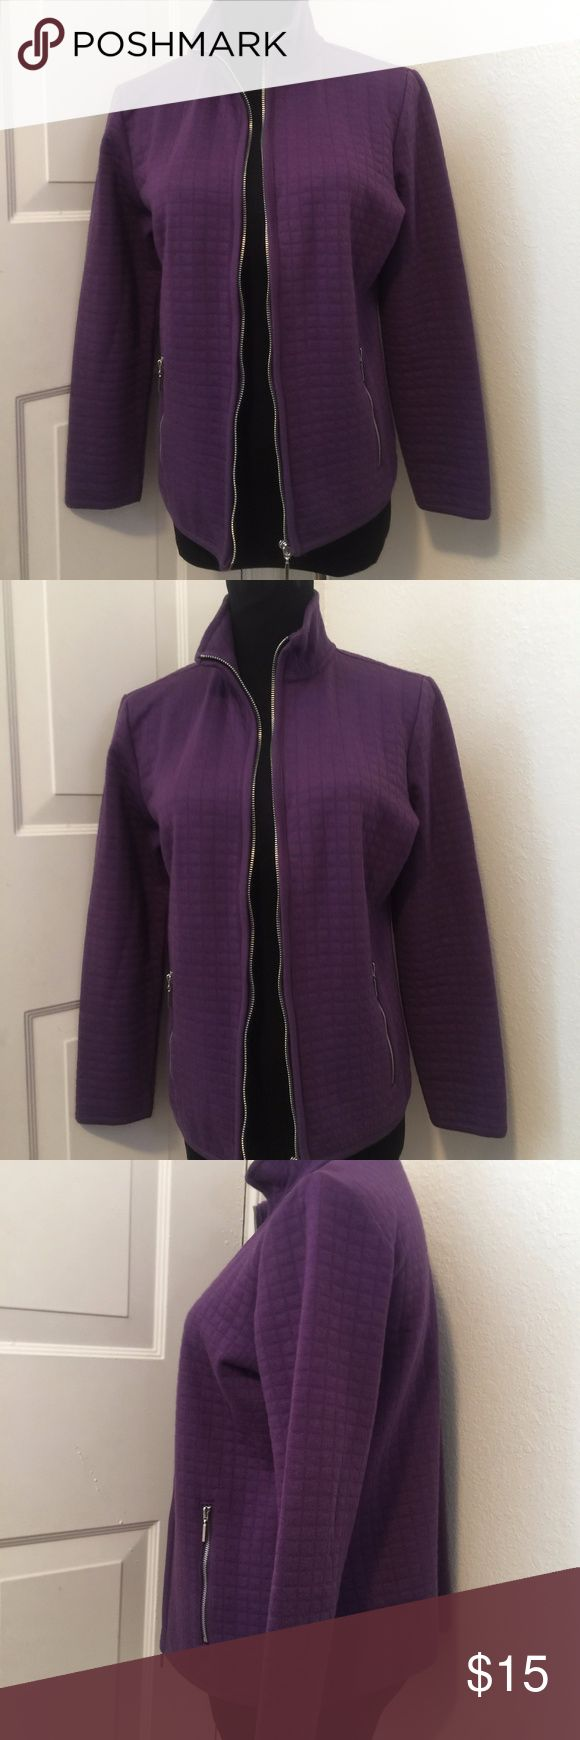 PS Karen Scott Petite Quilted Purple Zip Jacket Karen Scott jacket p/s. In good condition. 52% Cotton 48% polyester. Karen Scott Jackets & Coats Utility Jackets